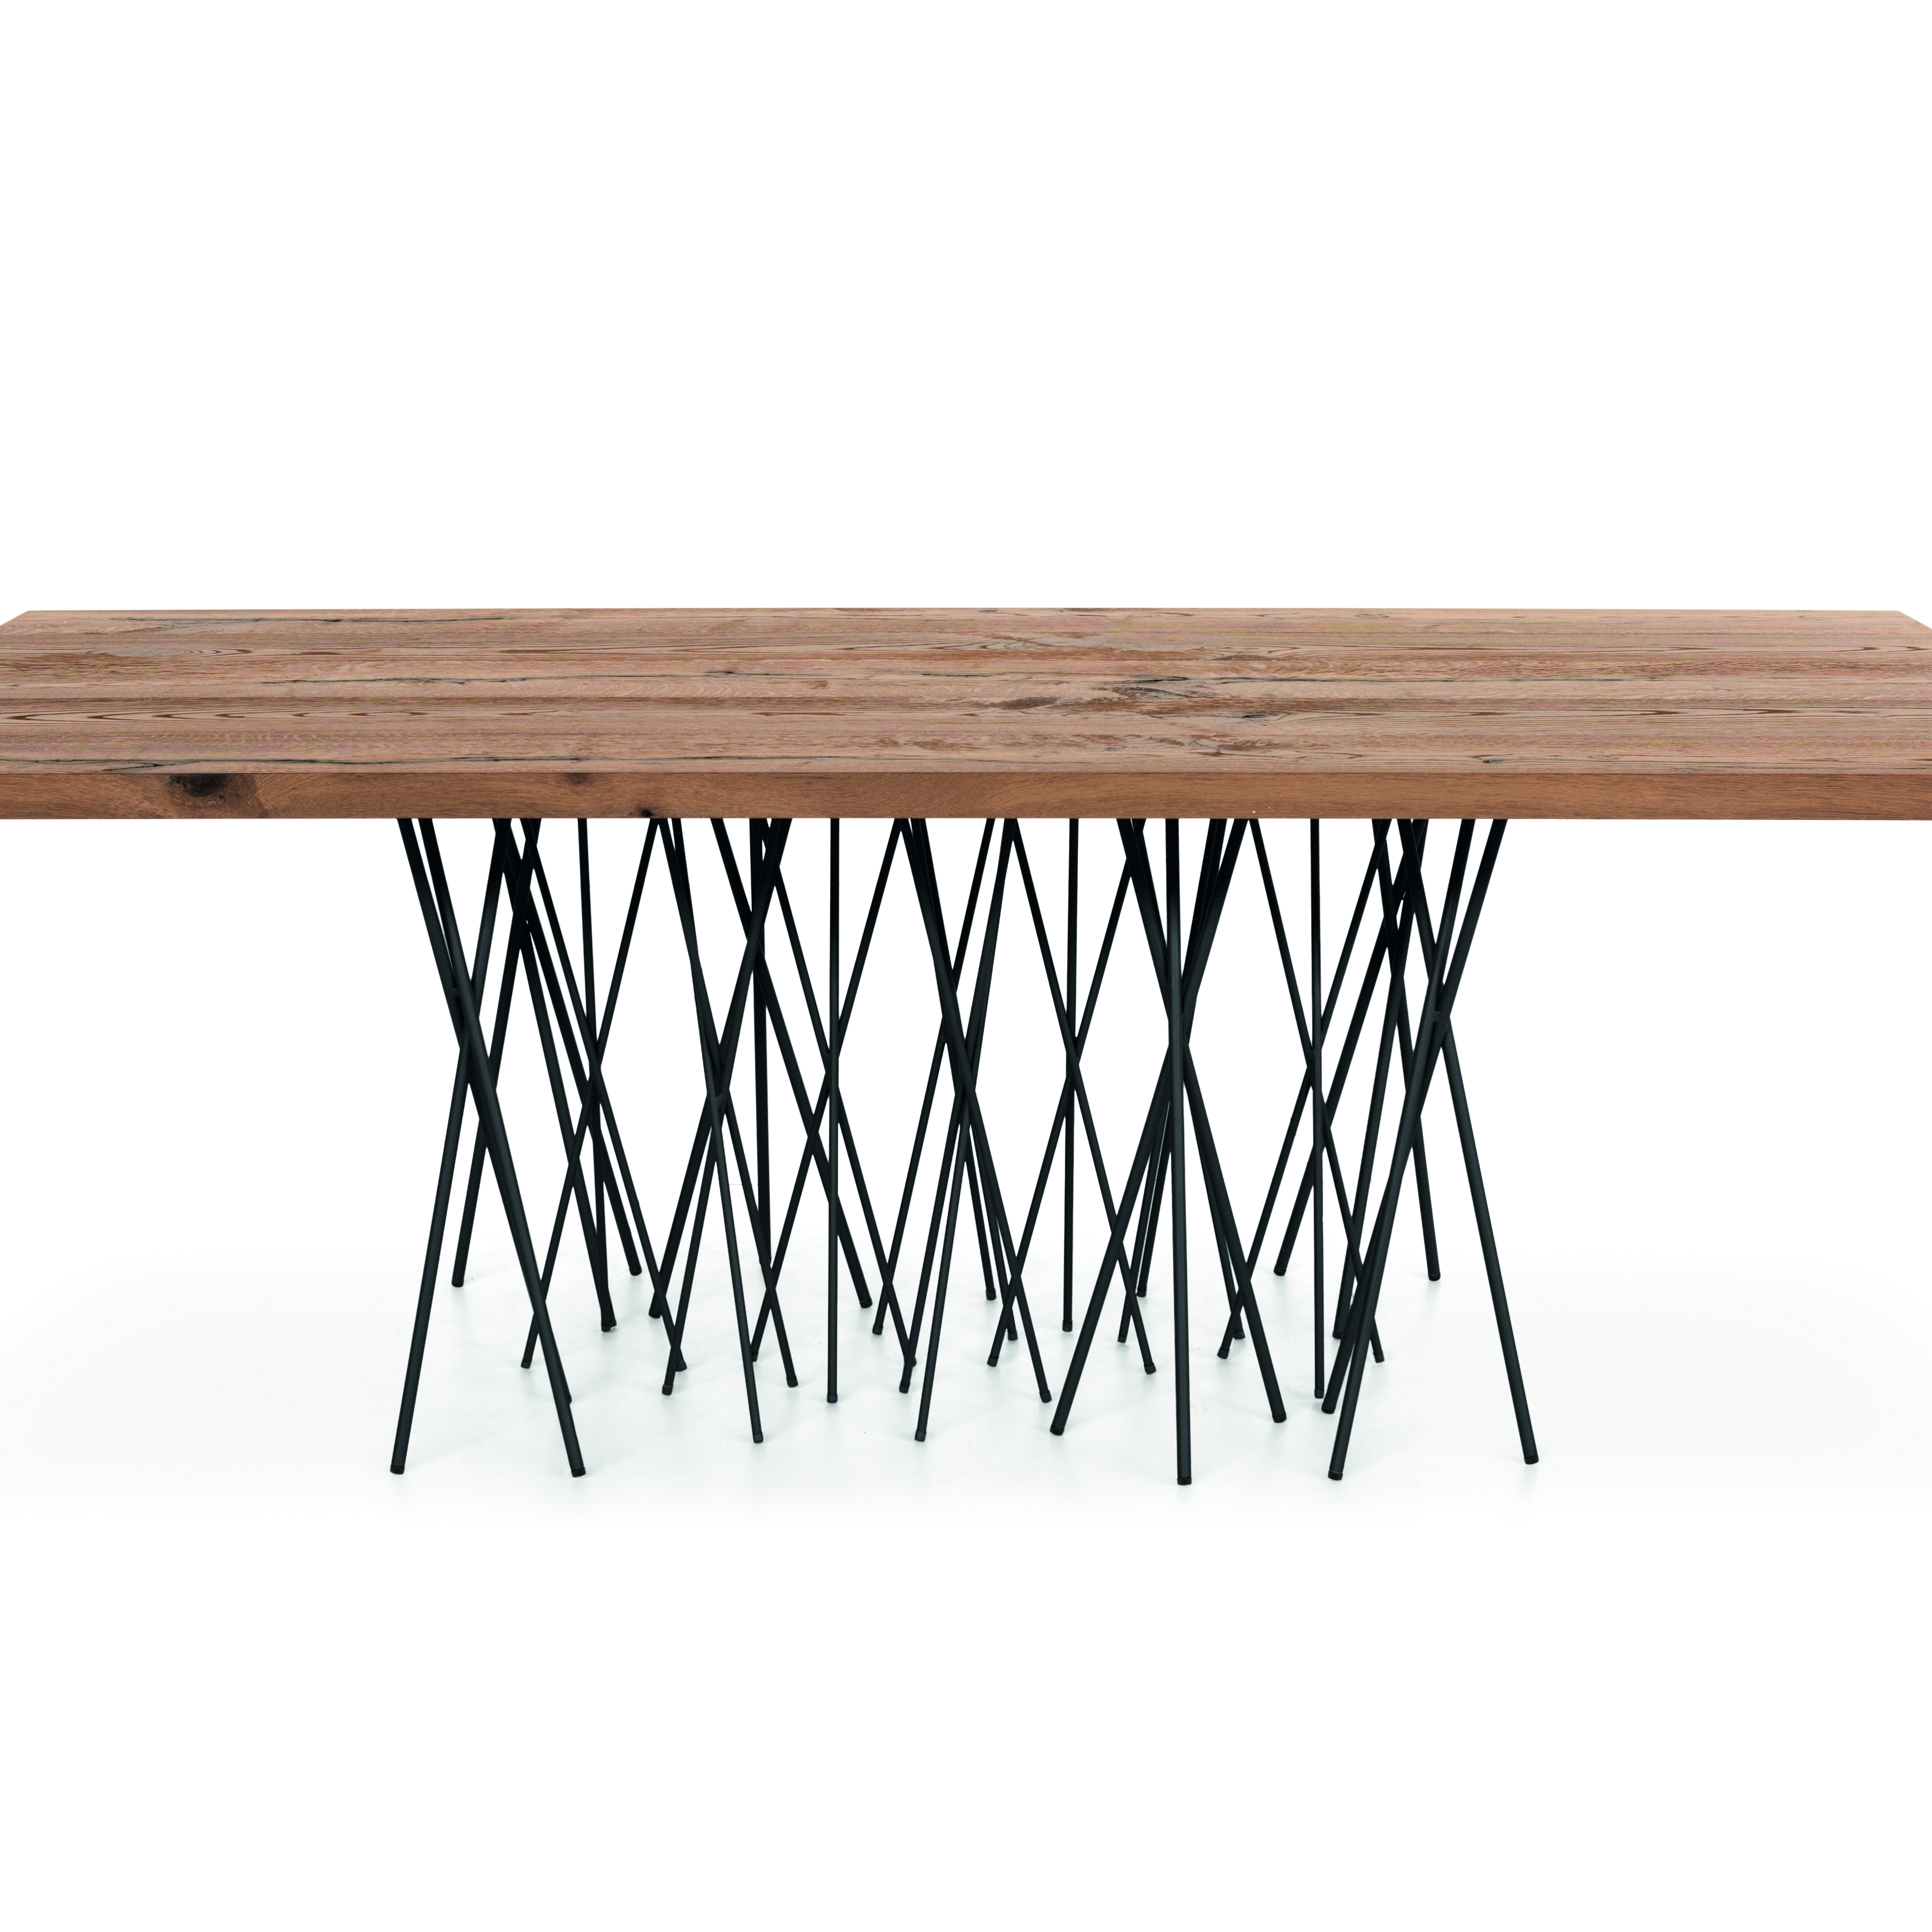 Sedit Bamboo Table